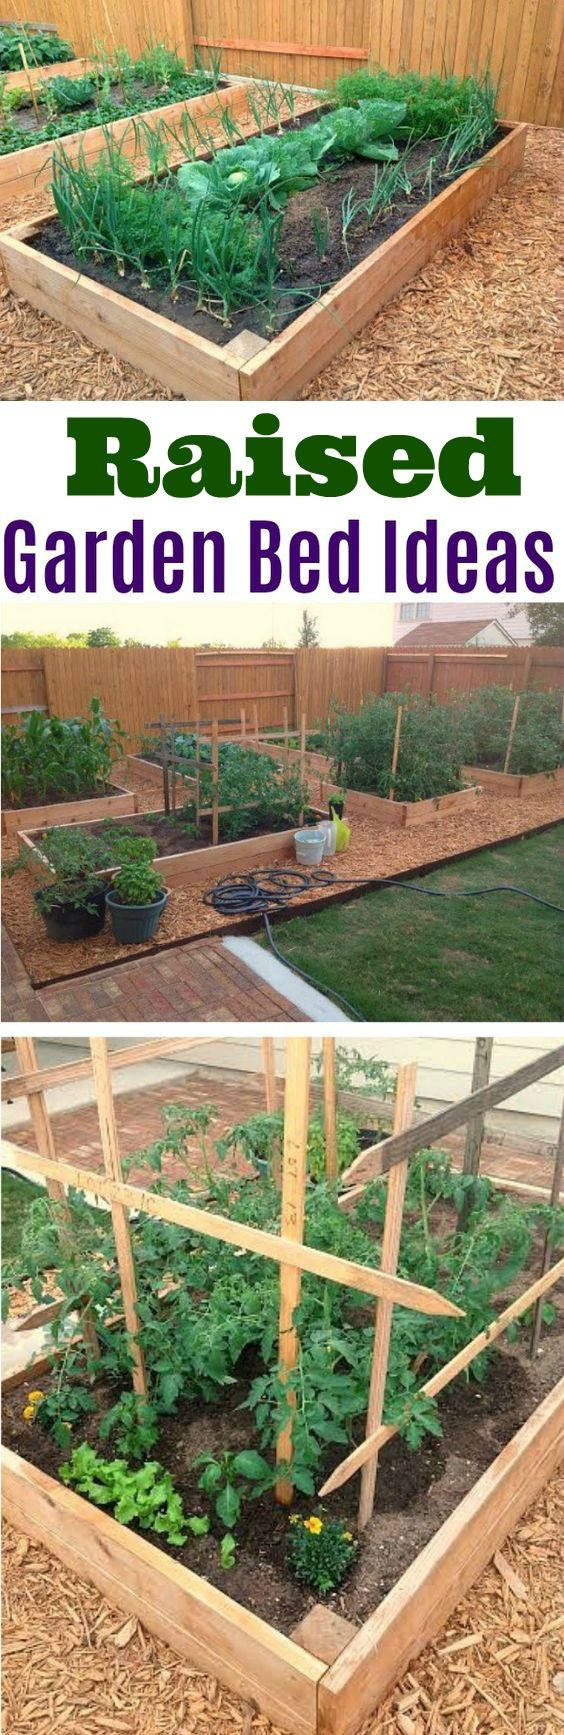 Beautiful Raised Garden Bed Pictures from Austin, Texas | Garden ...